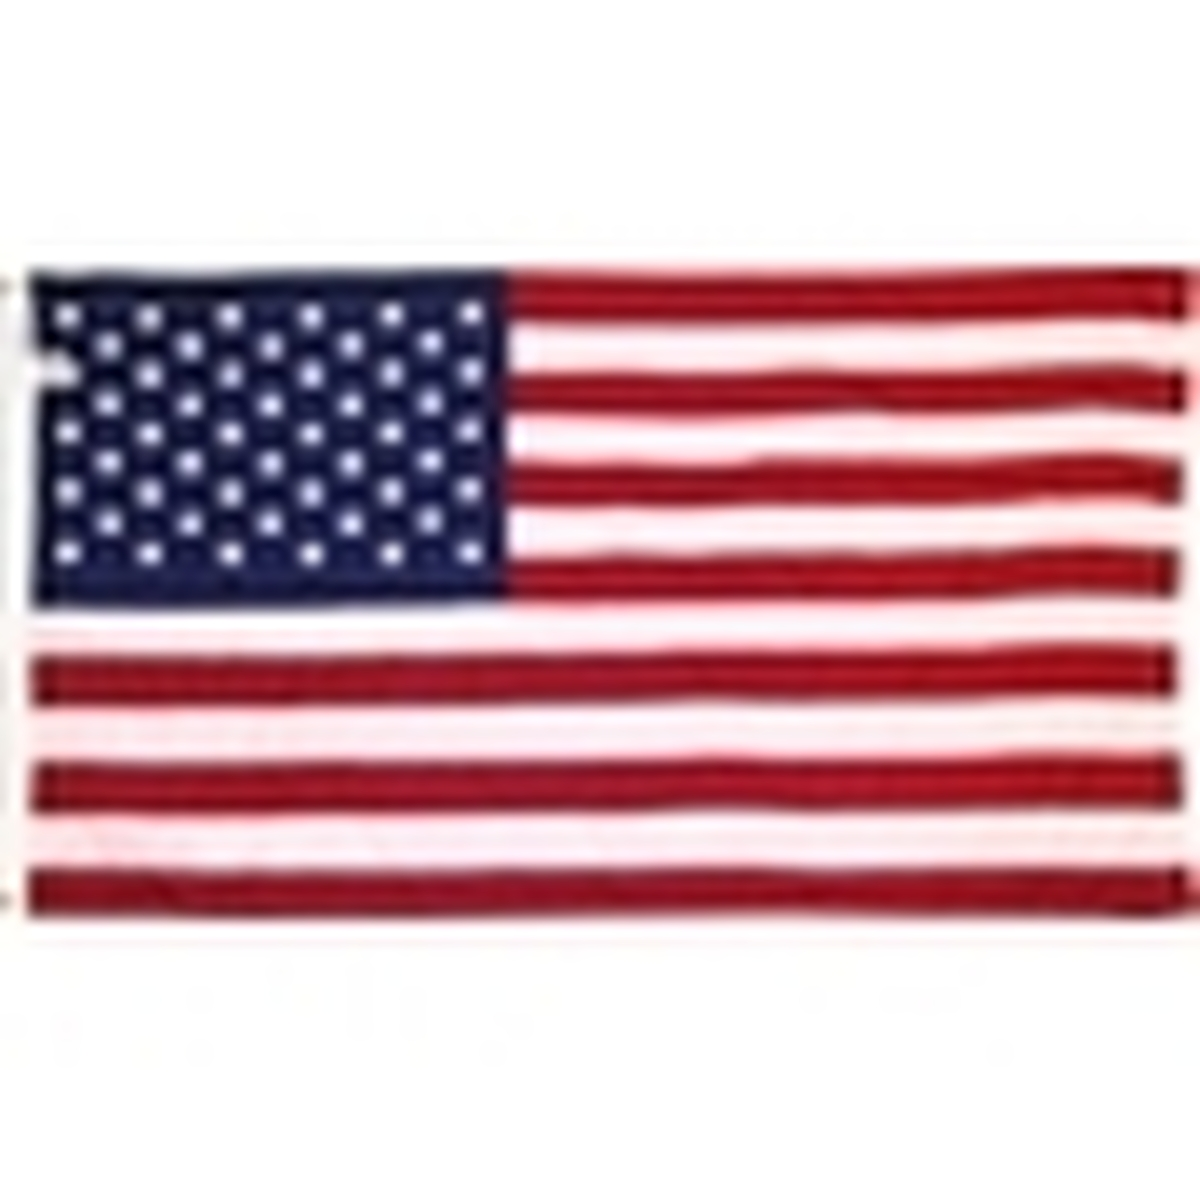 US Flags - Display all Items